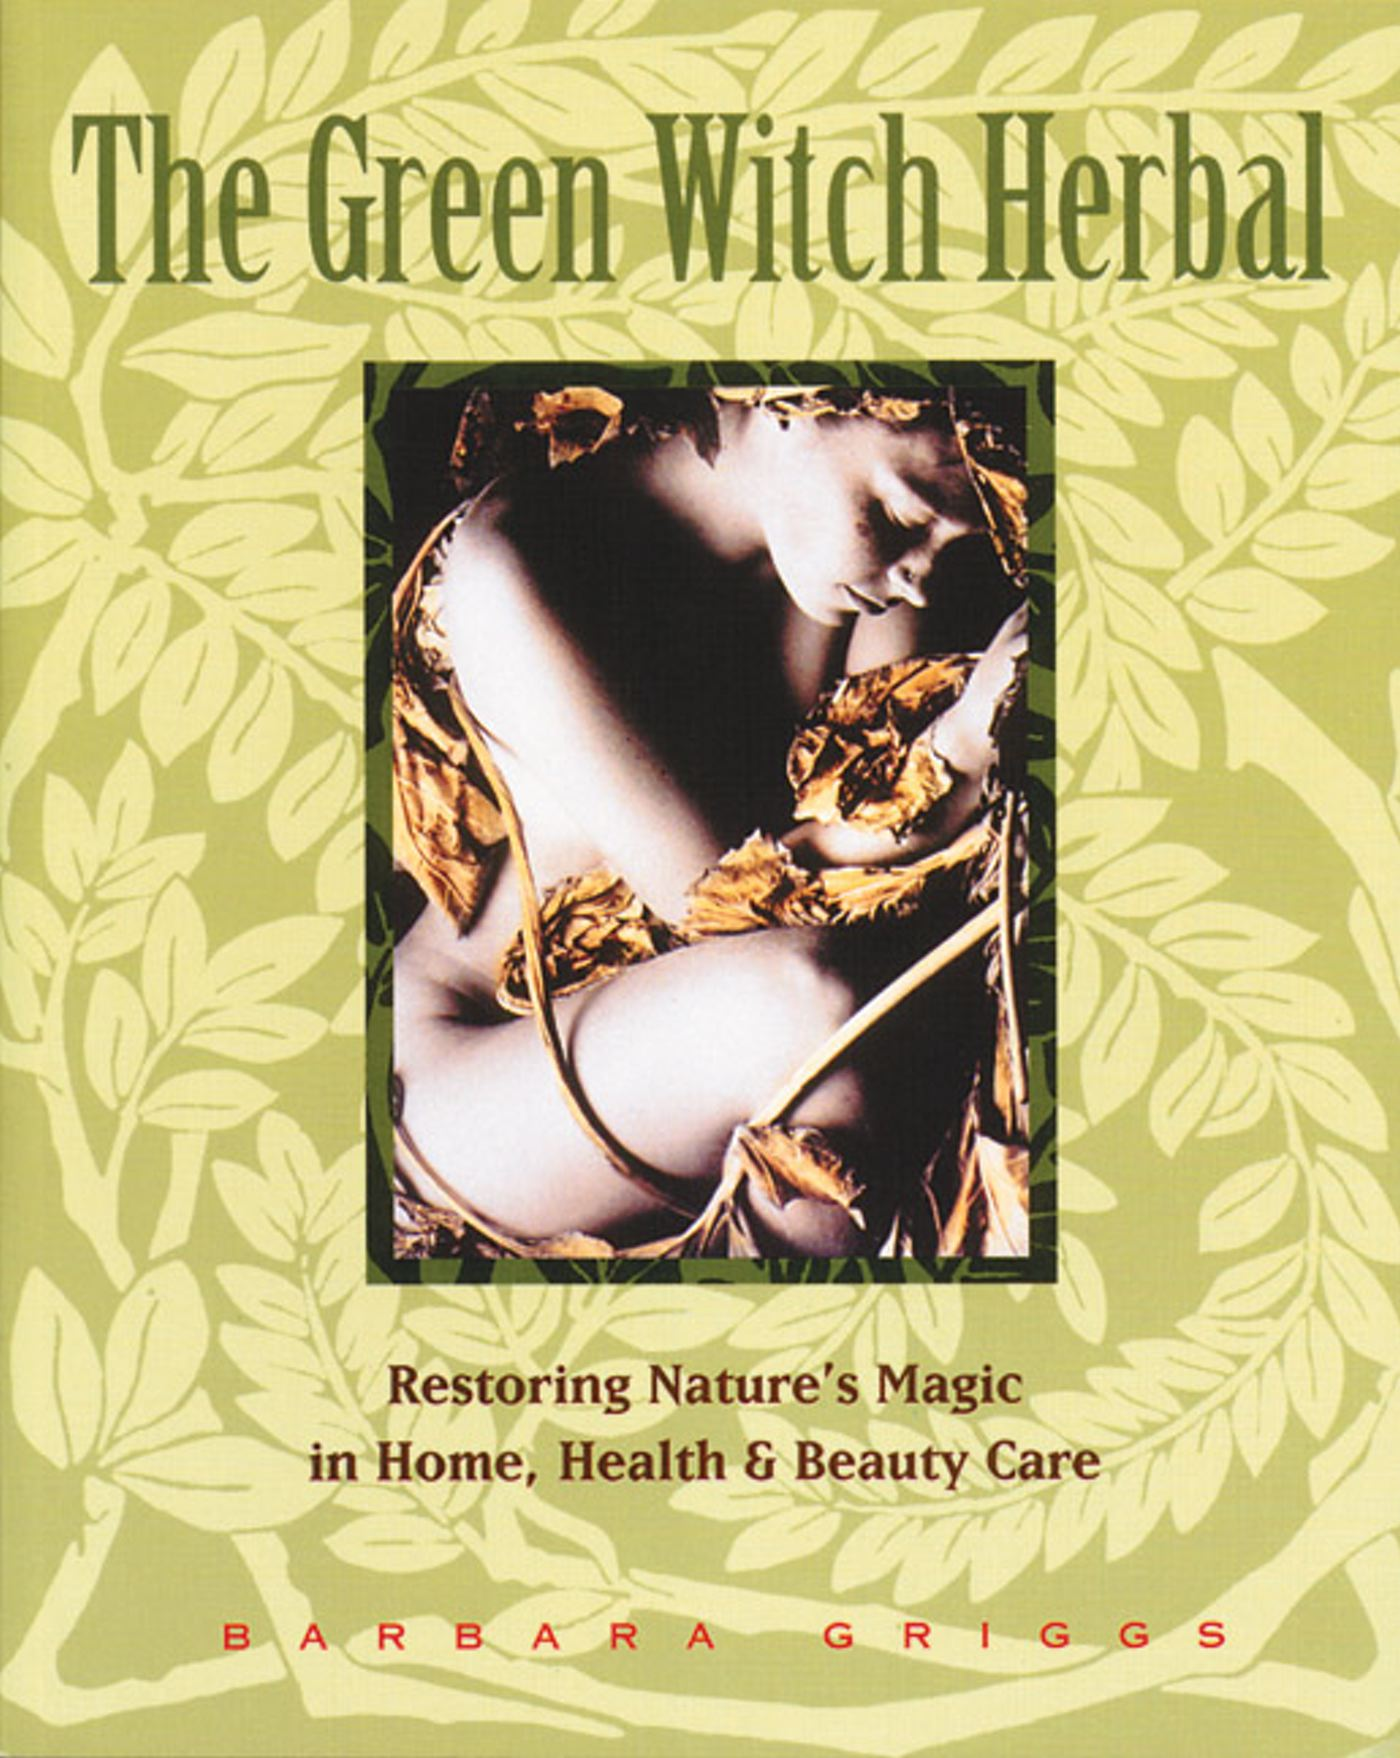 The green witch herbal 9780892814961 hr